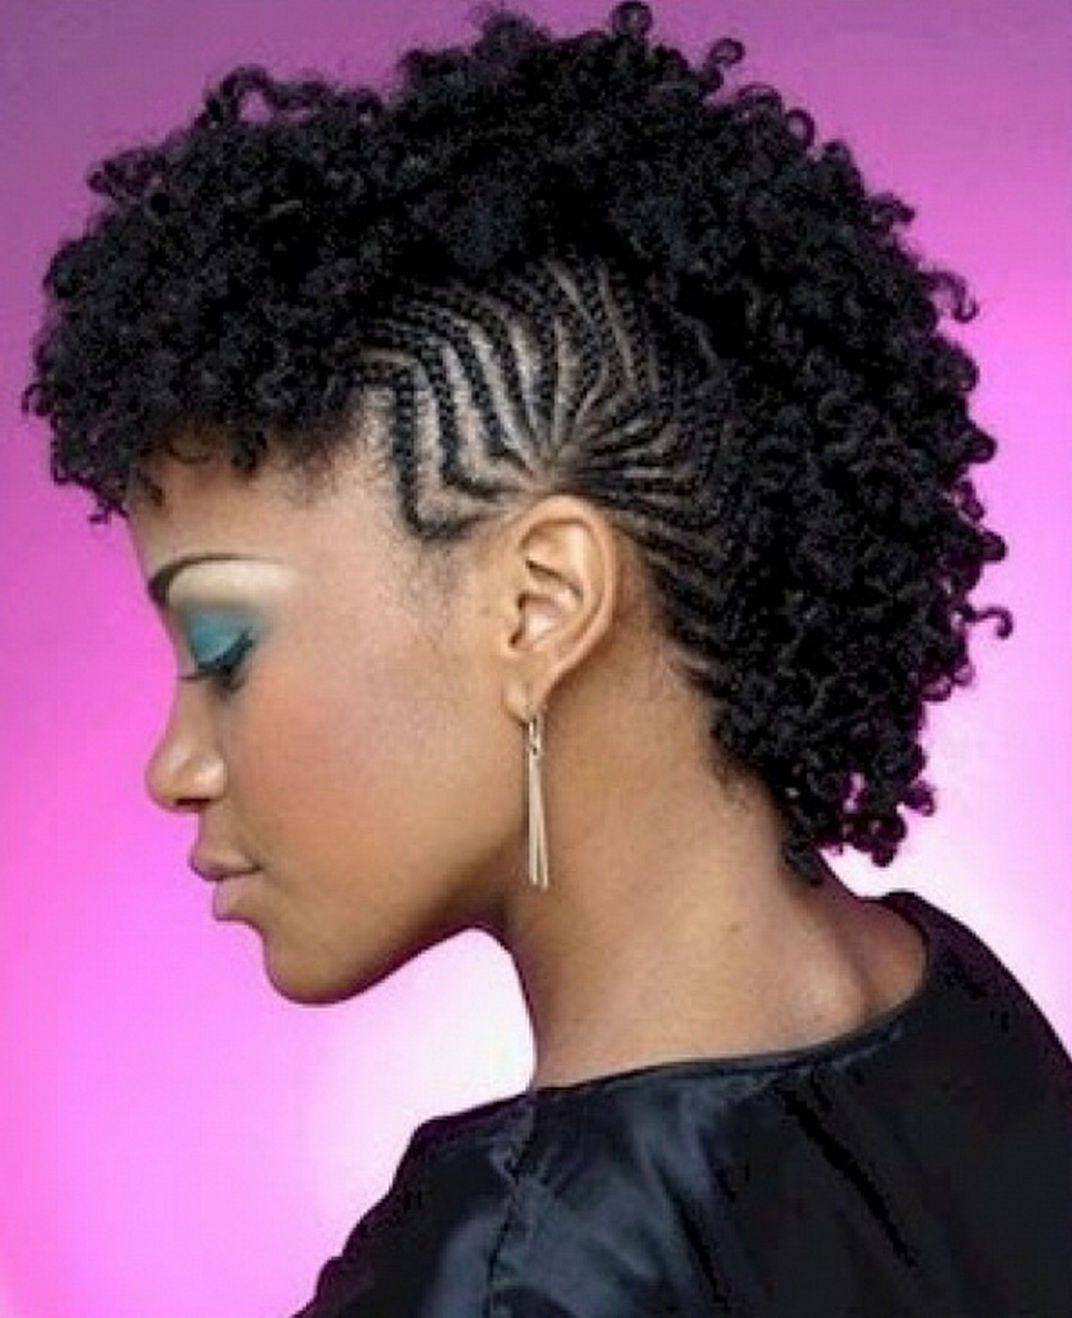 Hairstyles With Regard To Favorite Braids And Curls Mohawk Hairstyles (View 8 of 20)